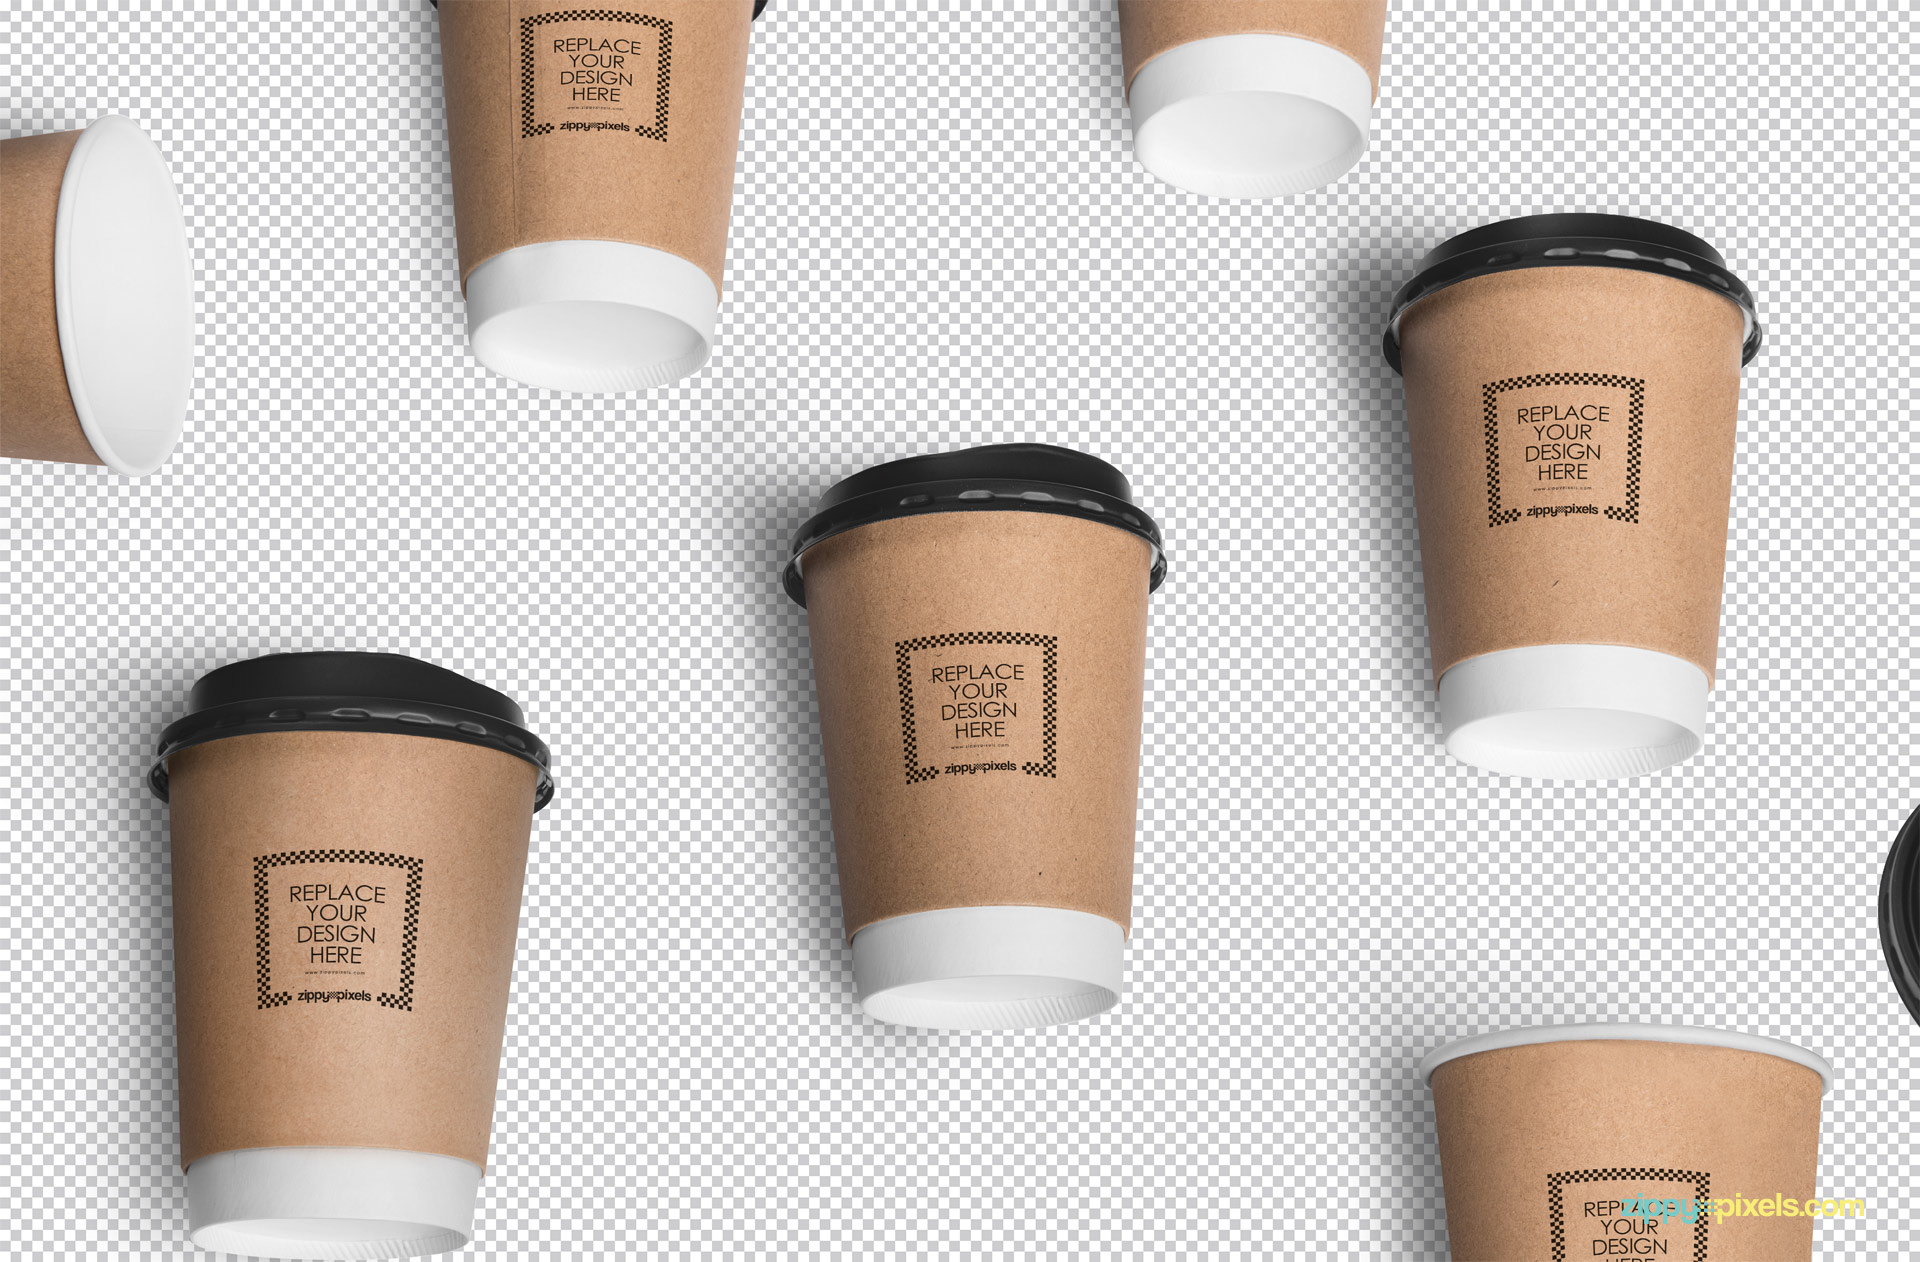 Use smart object to add your designs in this coffee cup mockup scene.